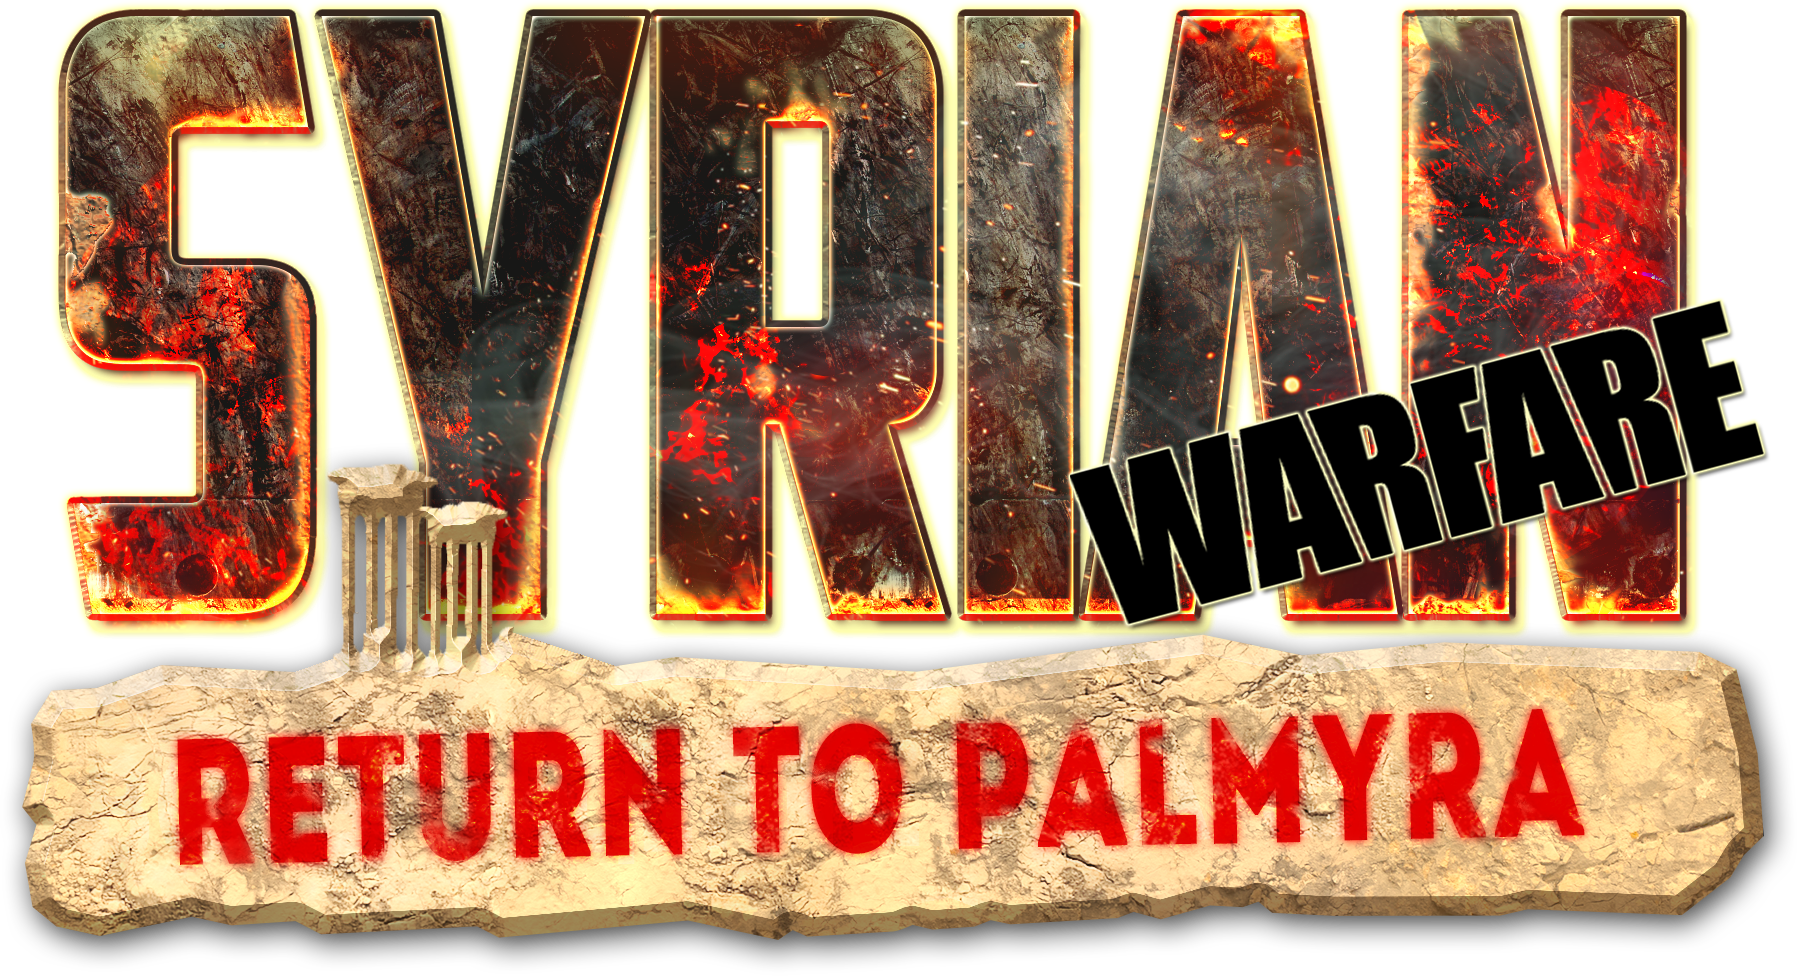 warfare return to palmyra eng